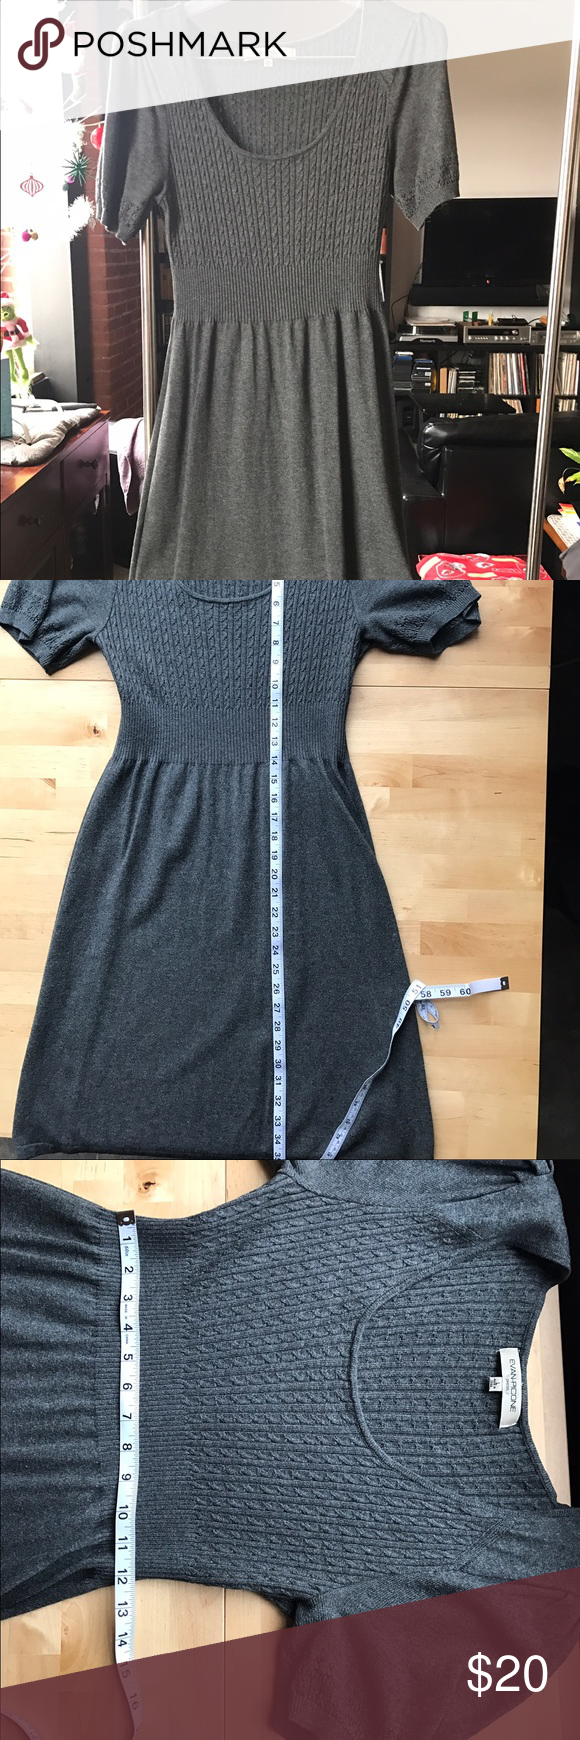 Cute a-line sweater dress Absolute must for your closet. Great fall/winter dress Evan Picone Dresses